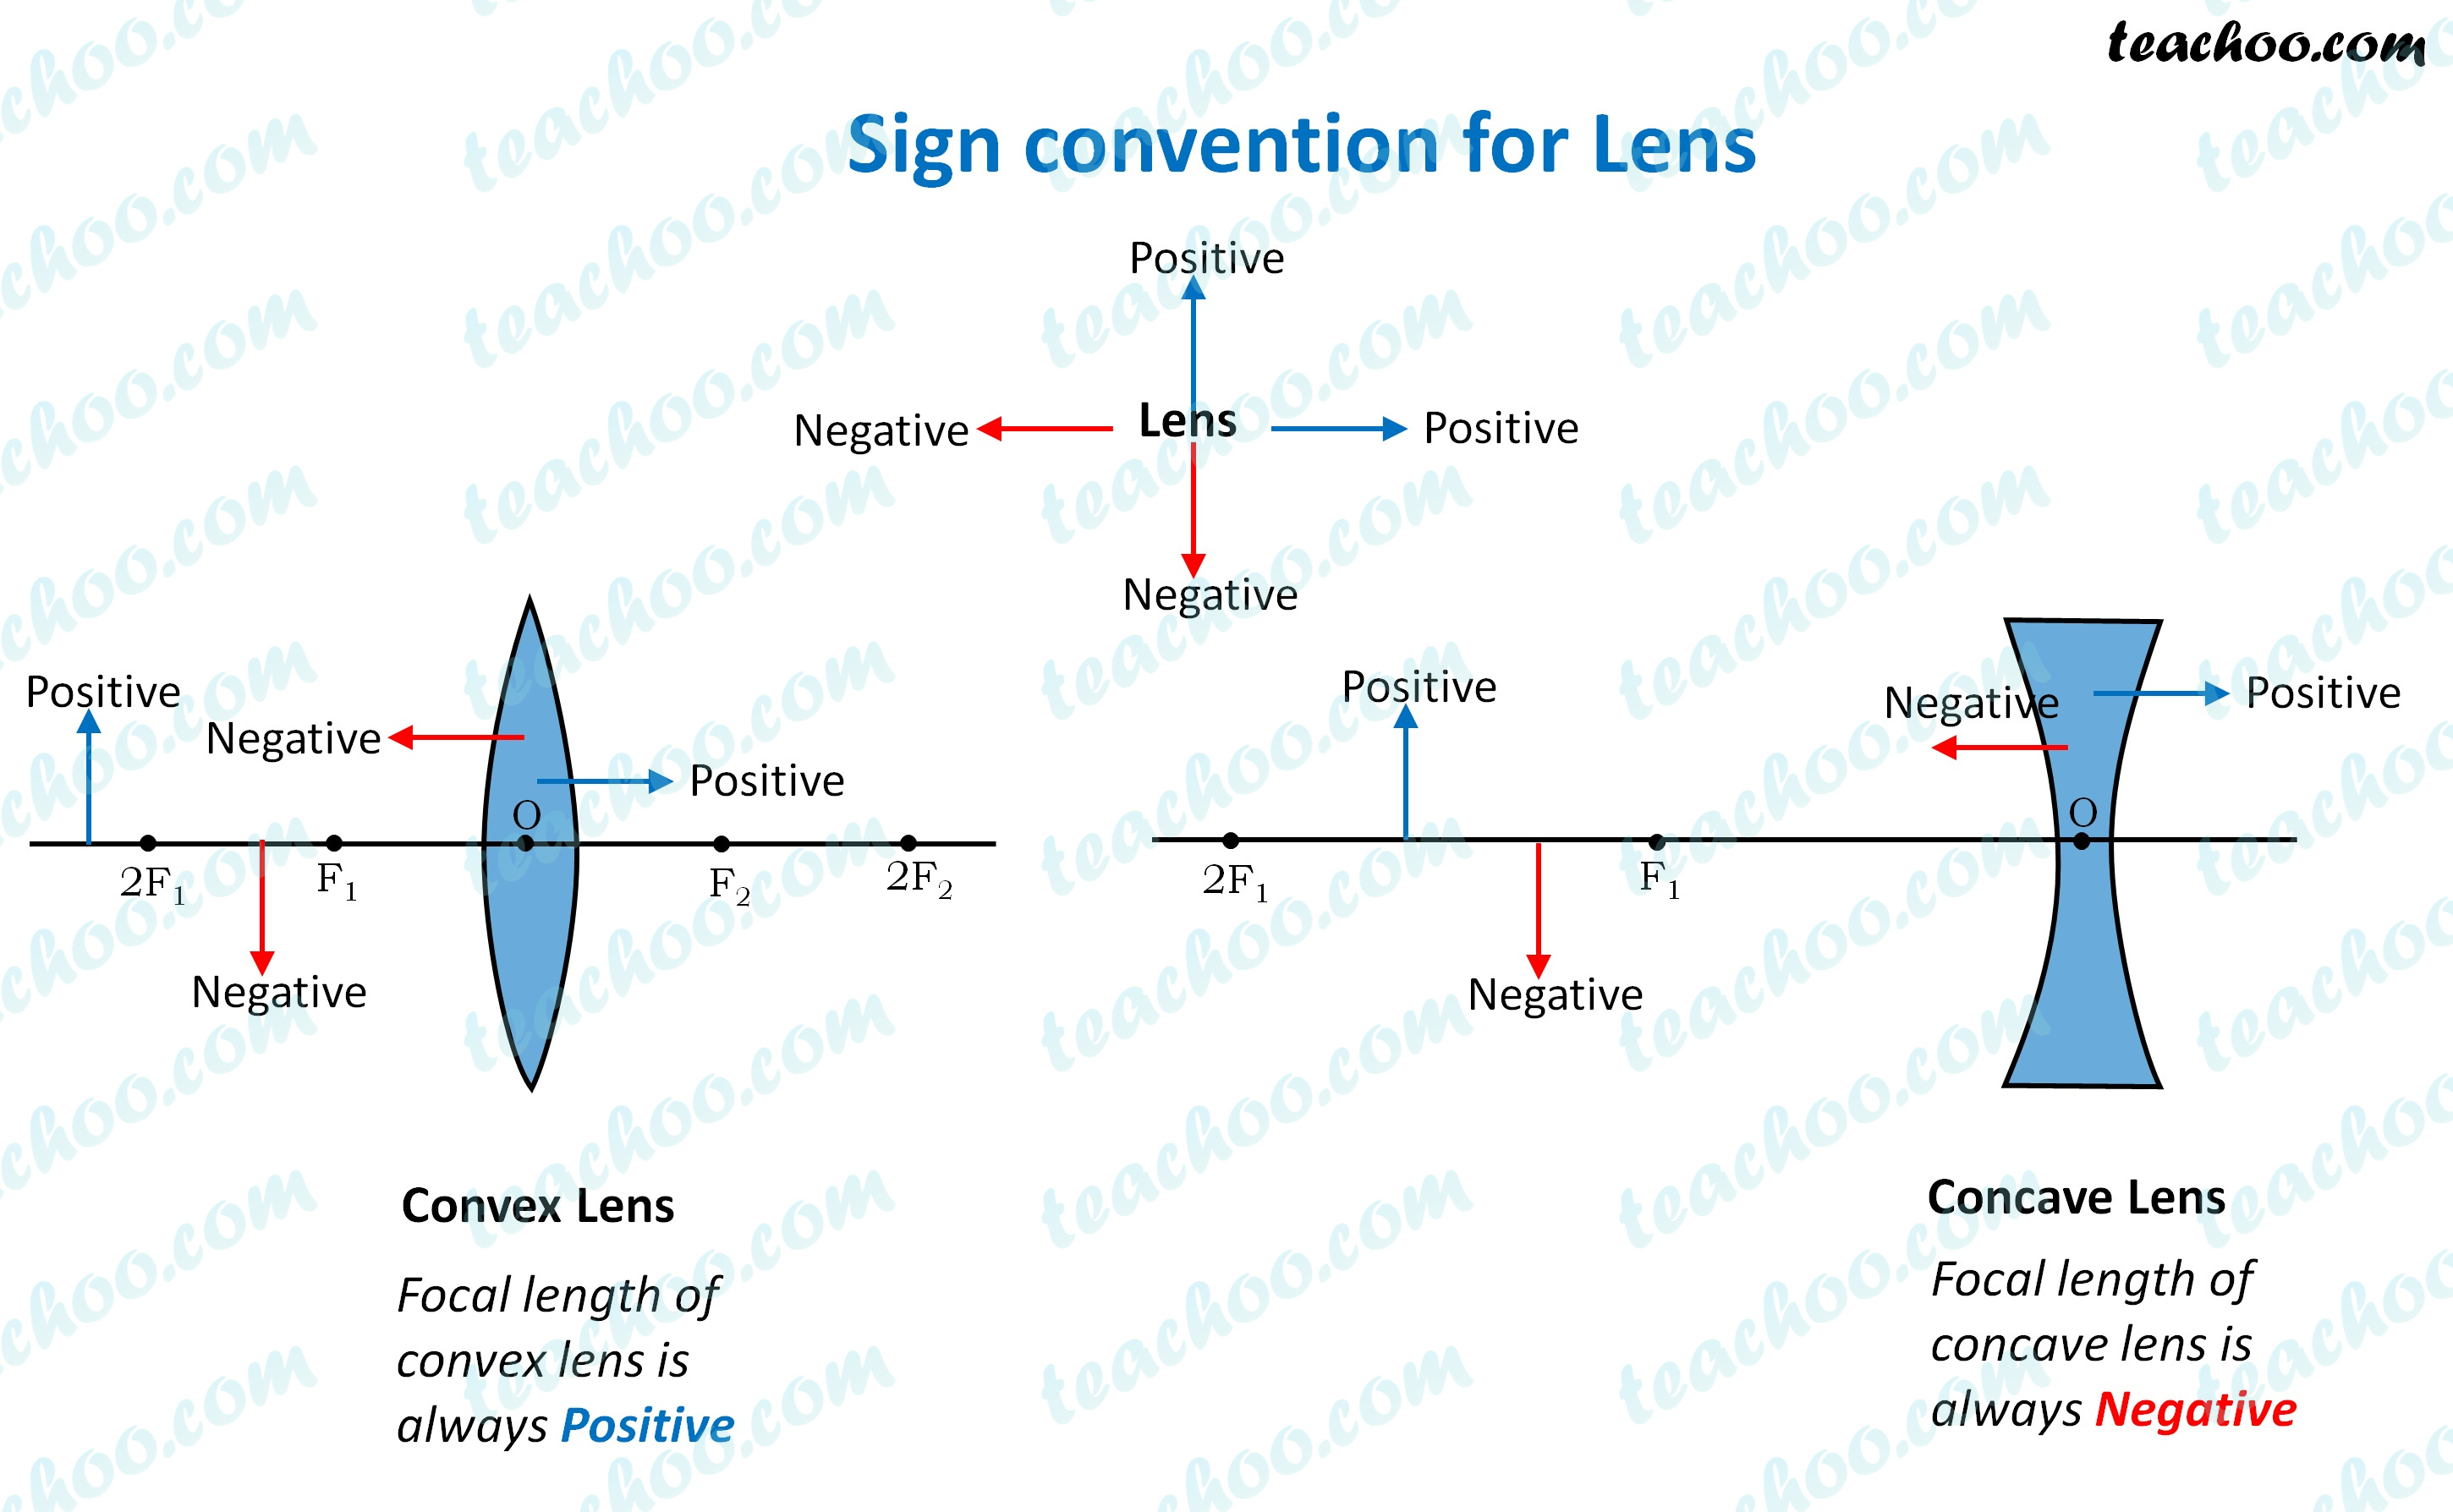 sign-convention-for-lens---teachoo2.jpg